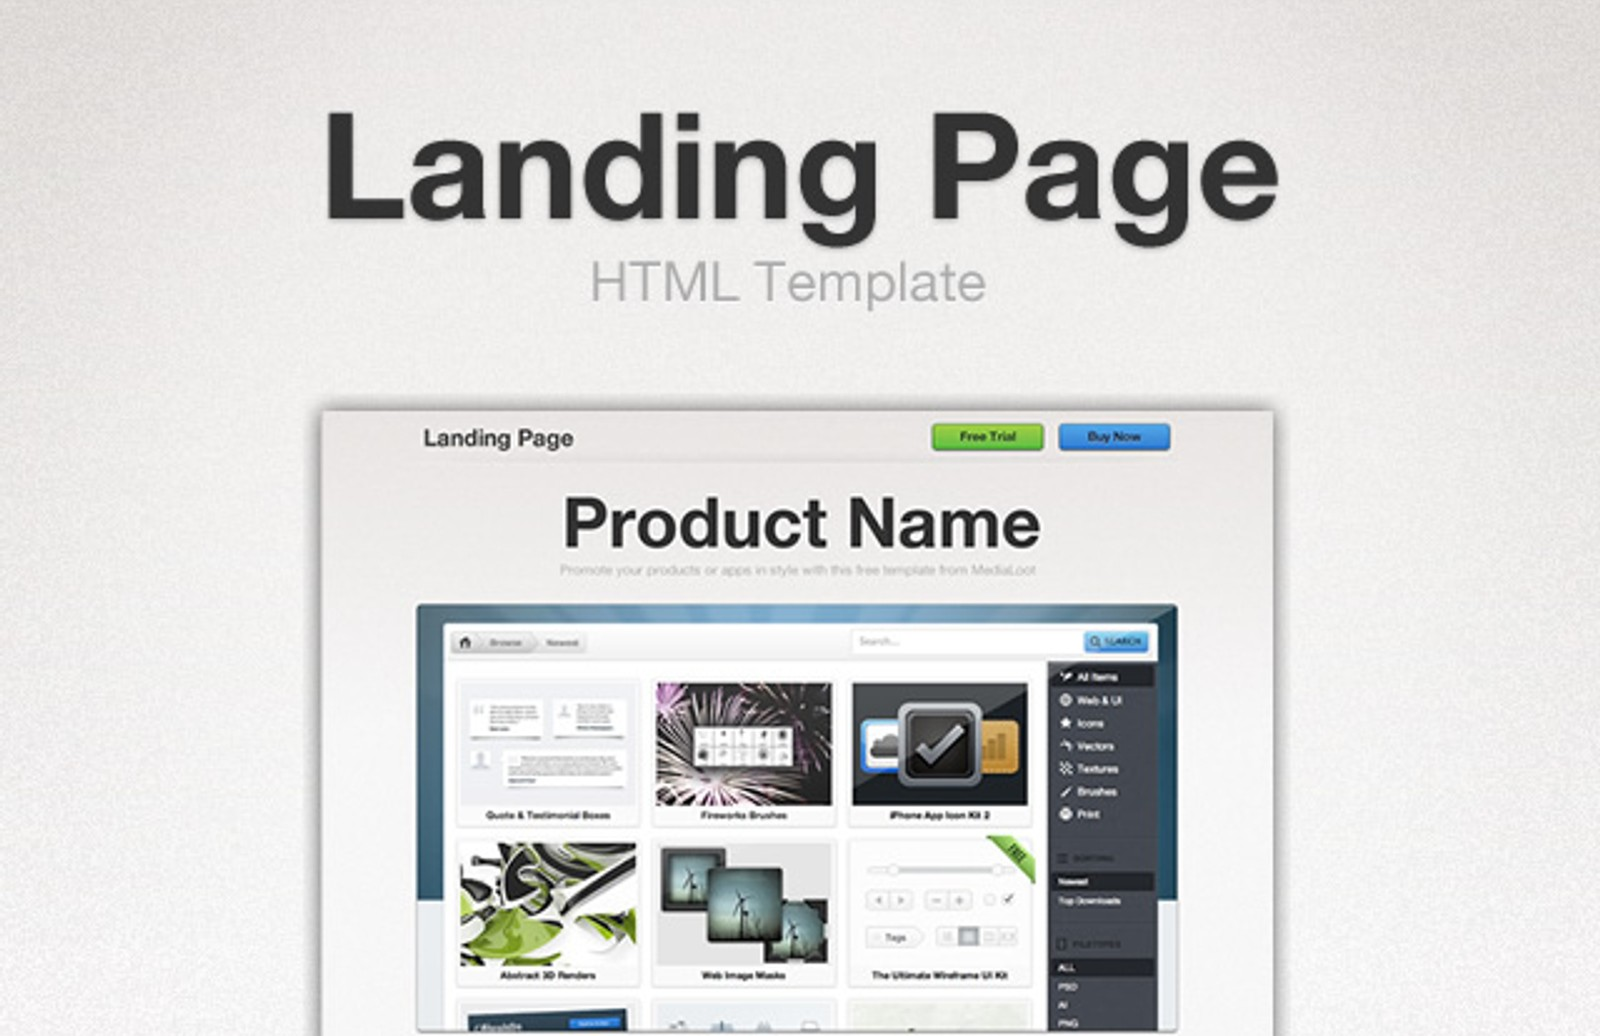 Landing Page HTML Template Medialoot - Landing page html template